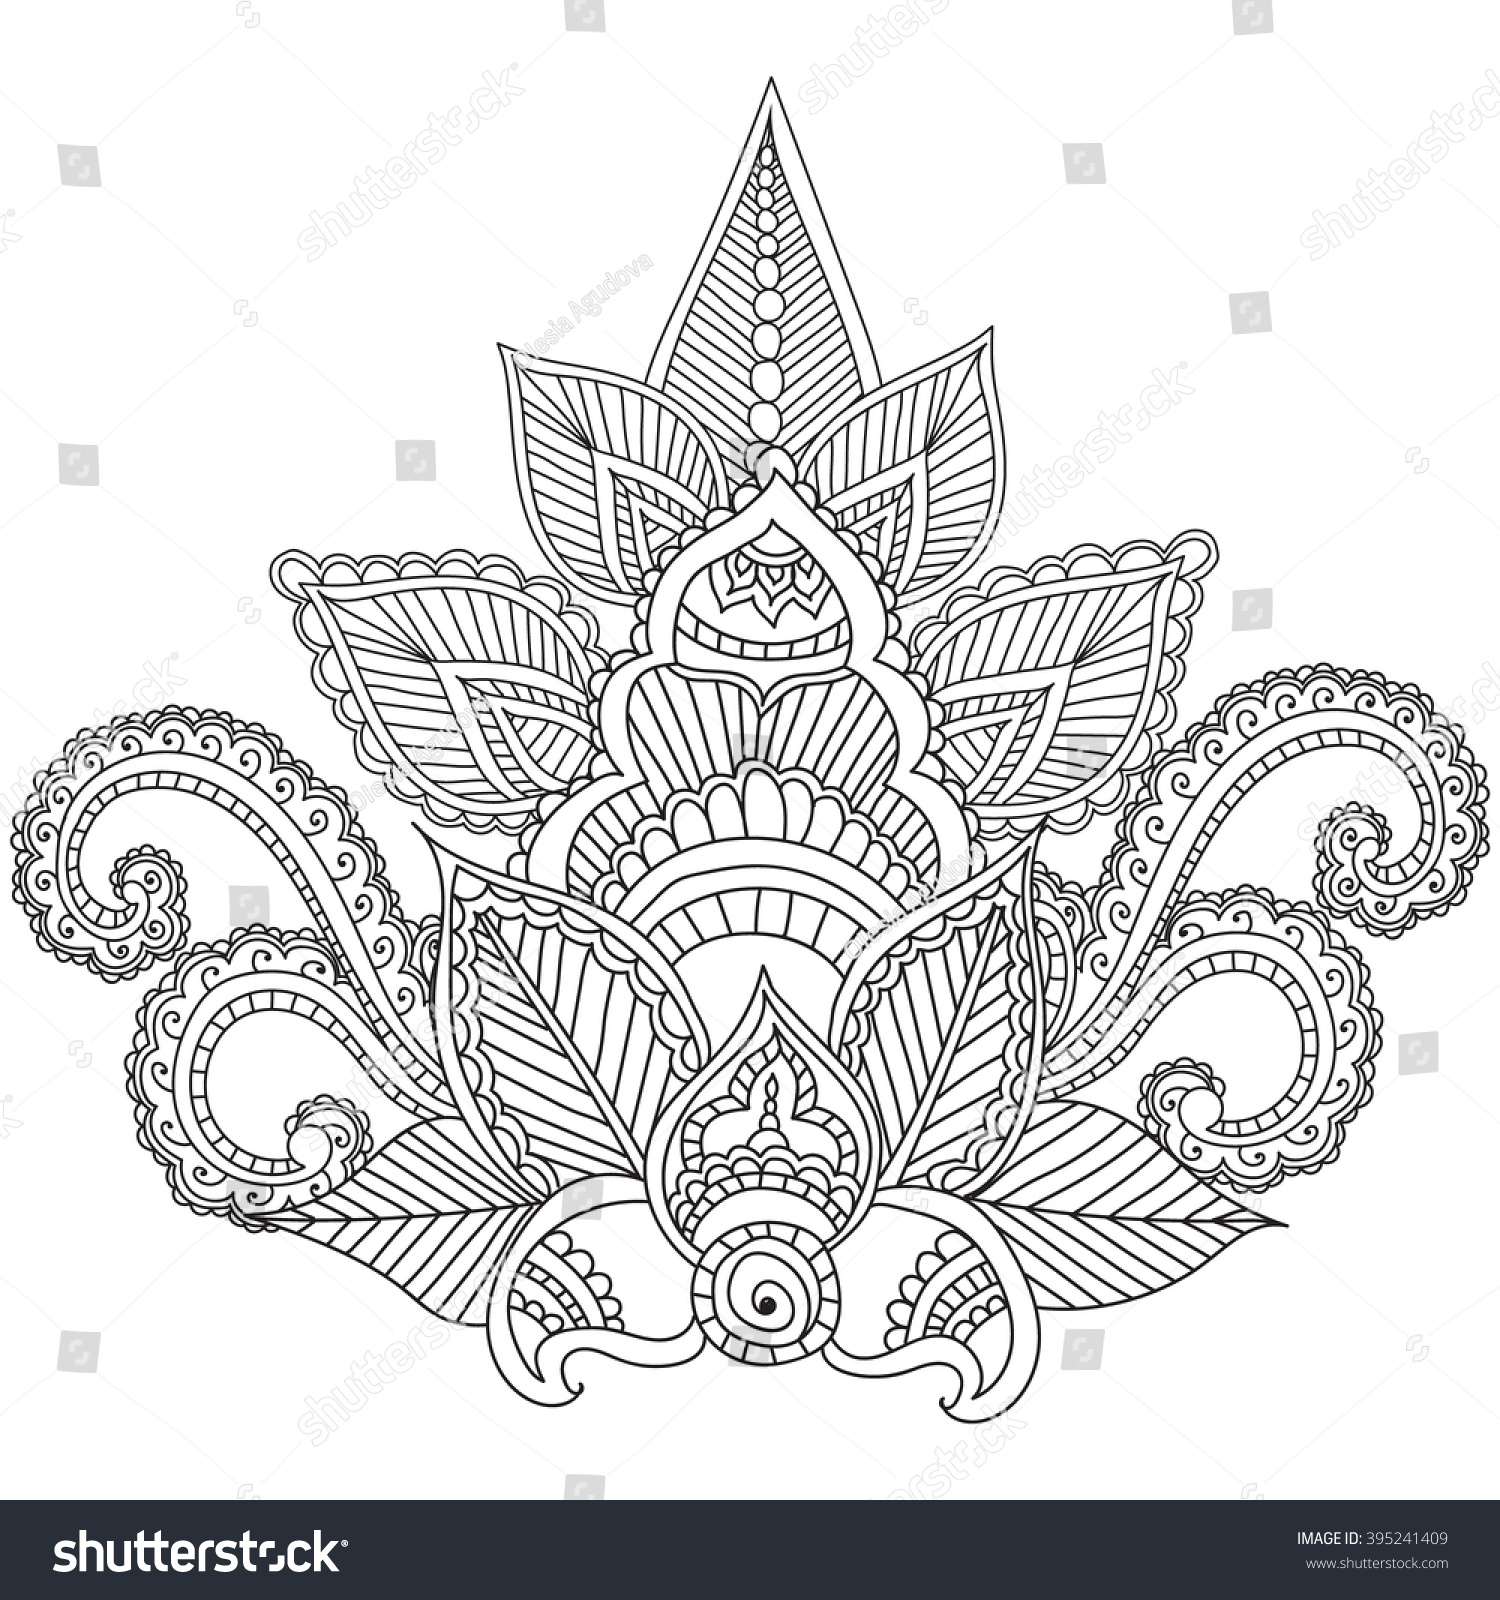 mehndi coloring pages - coloring pages adults henna mehndi doodles stock vector